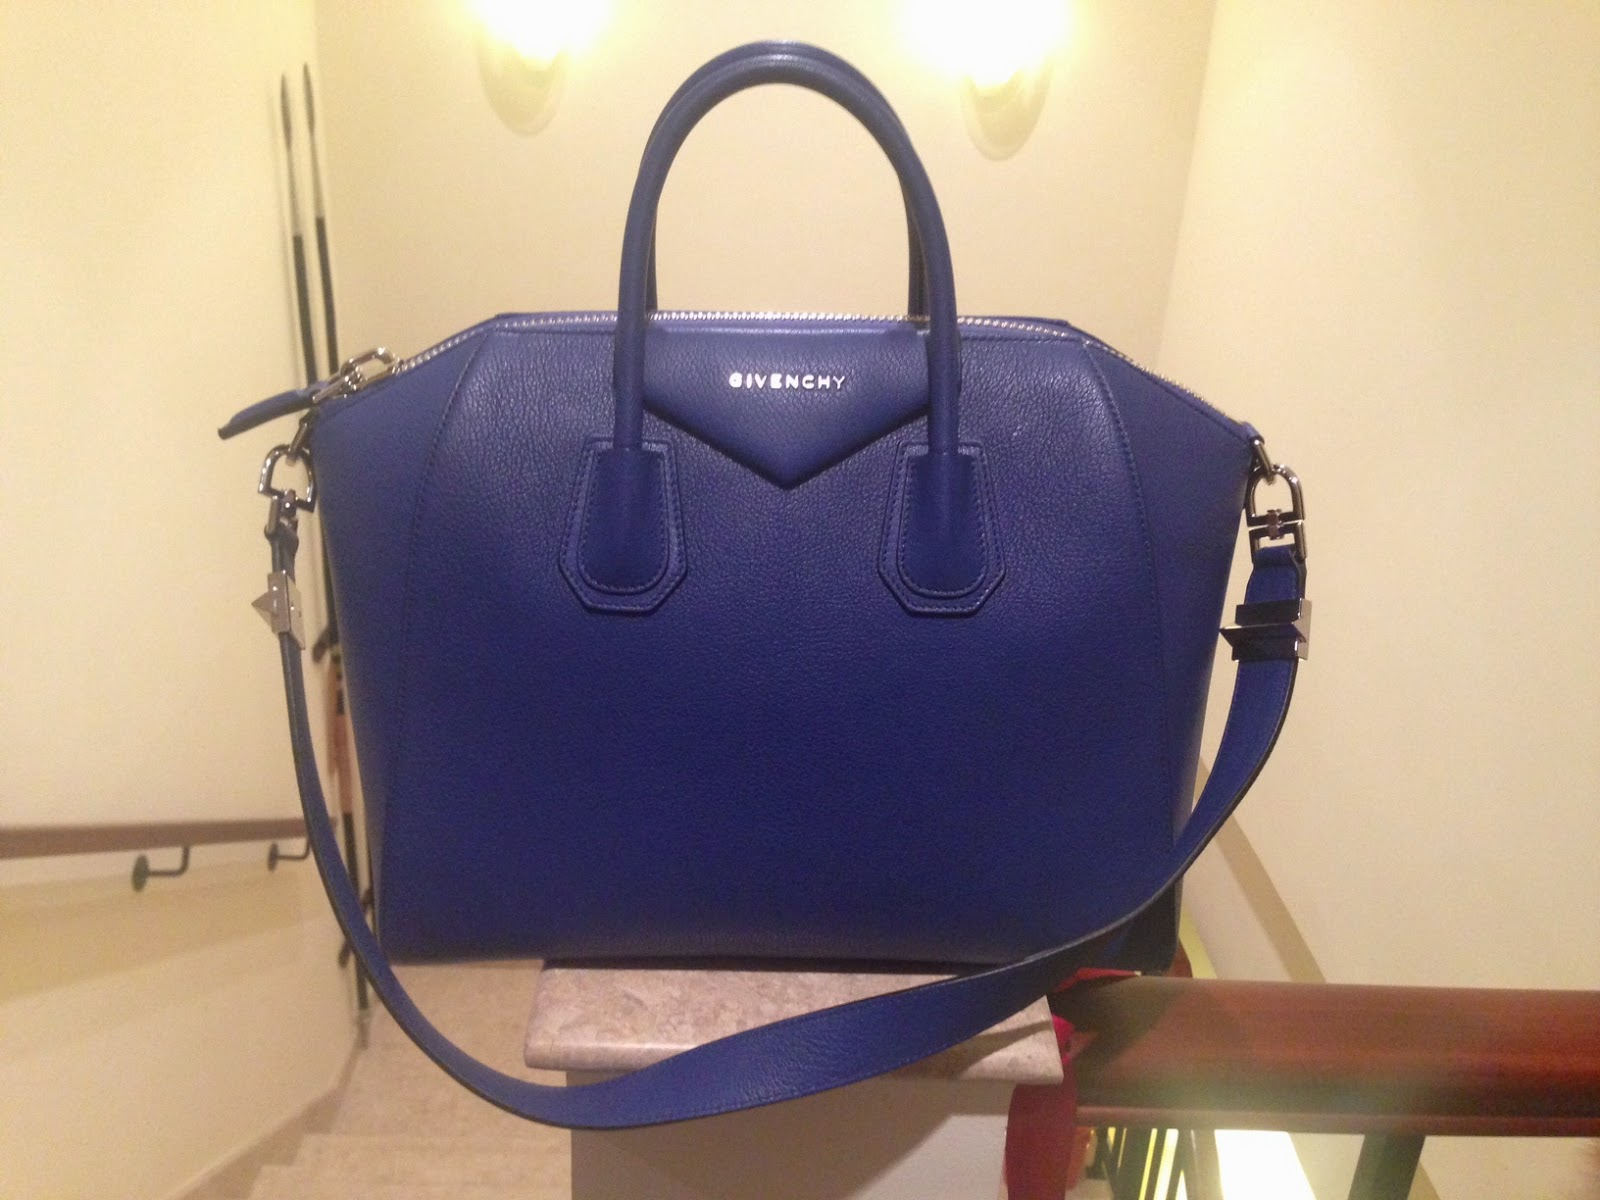 fc867c79ea Bag Review – Replica Givenchy Antigona Medium In Blue Leather